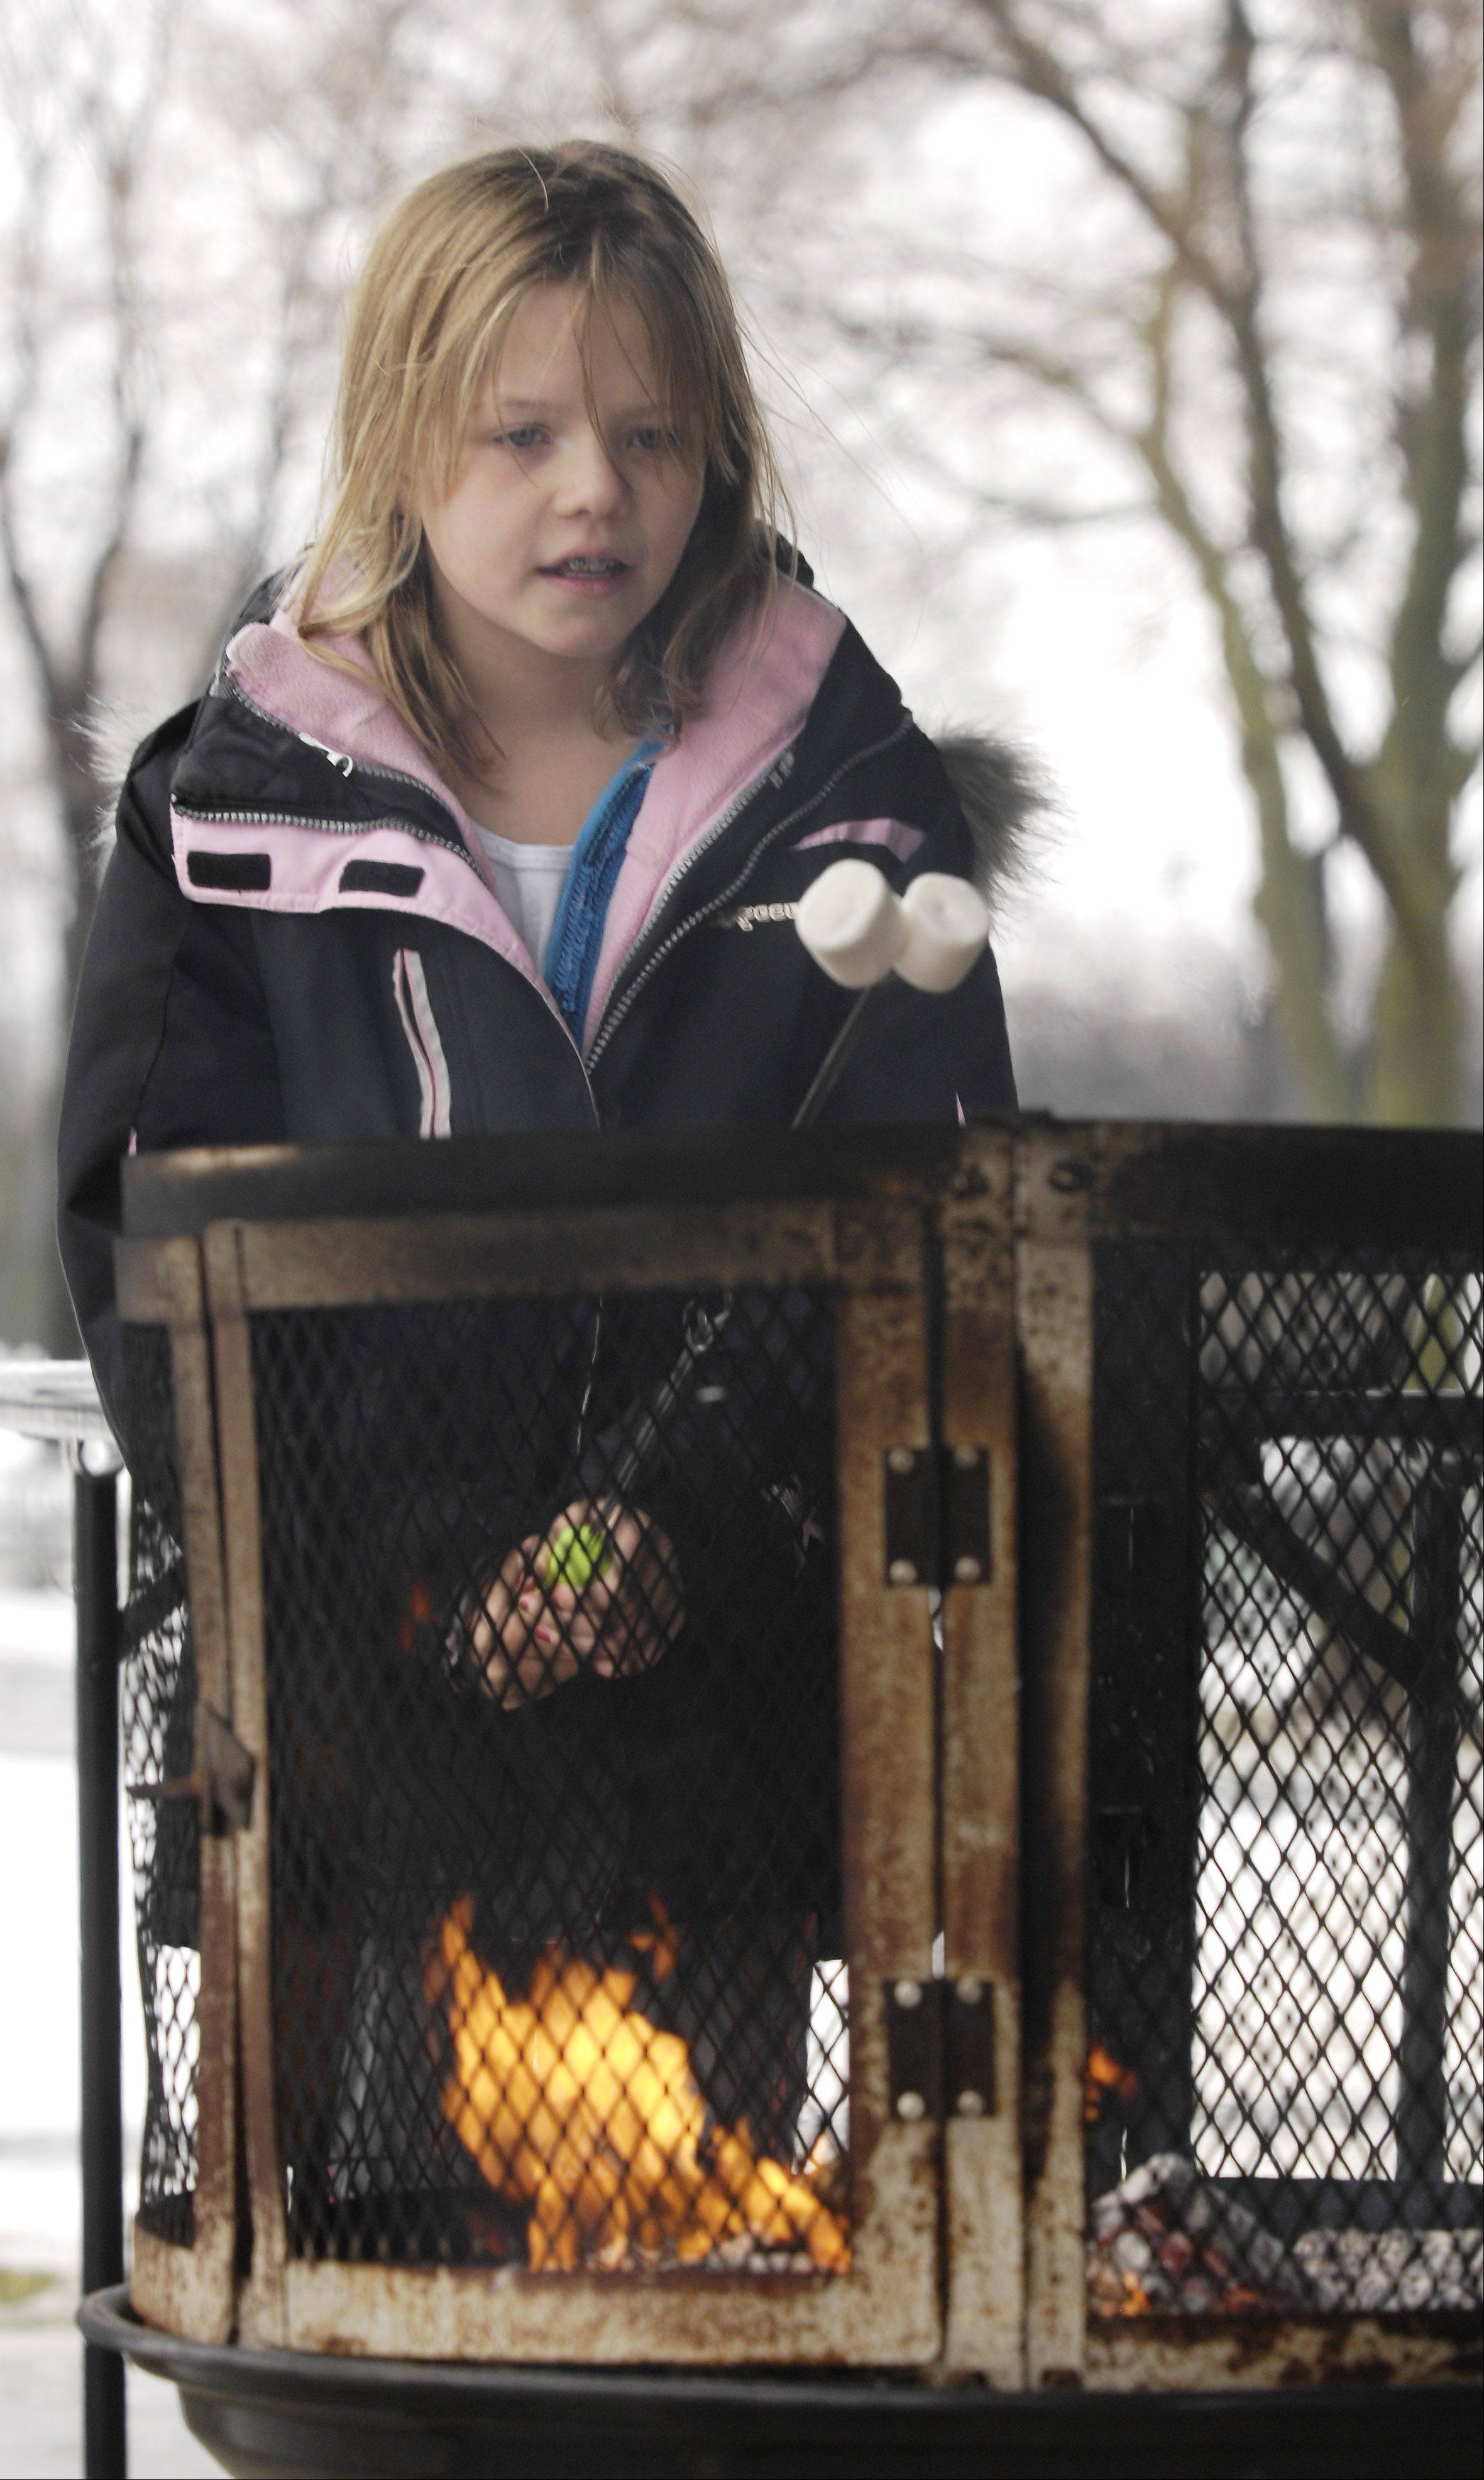 Stephanie Haiden, 10, of Hinsdale makes some smores Sunday during the Oak Brook Park District and Oak Brook Civic Association's annual Winterfest at Central Park West.